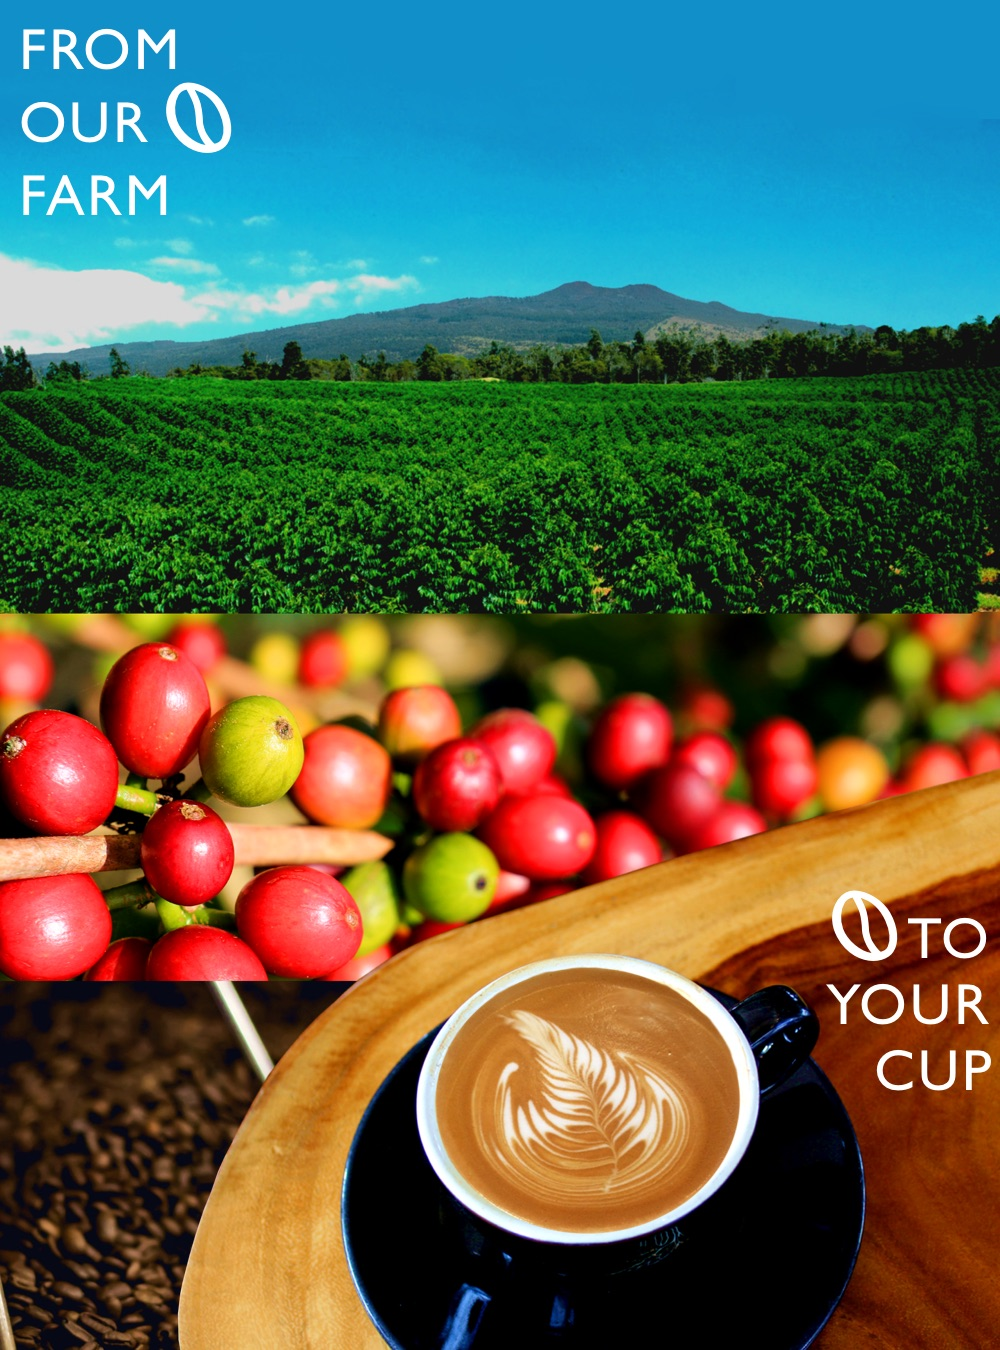 From out Farm to your cup _KCTC.jpg